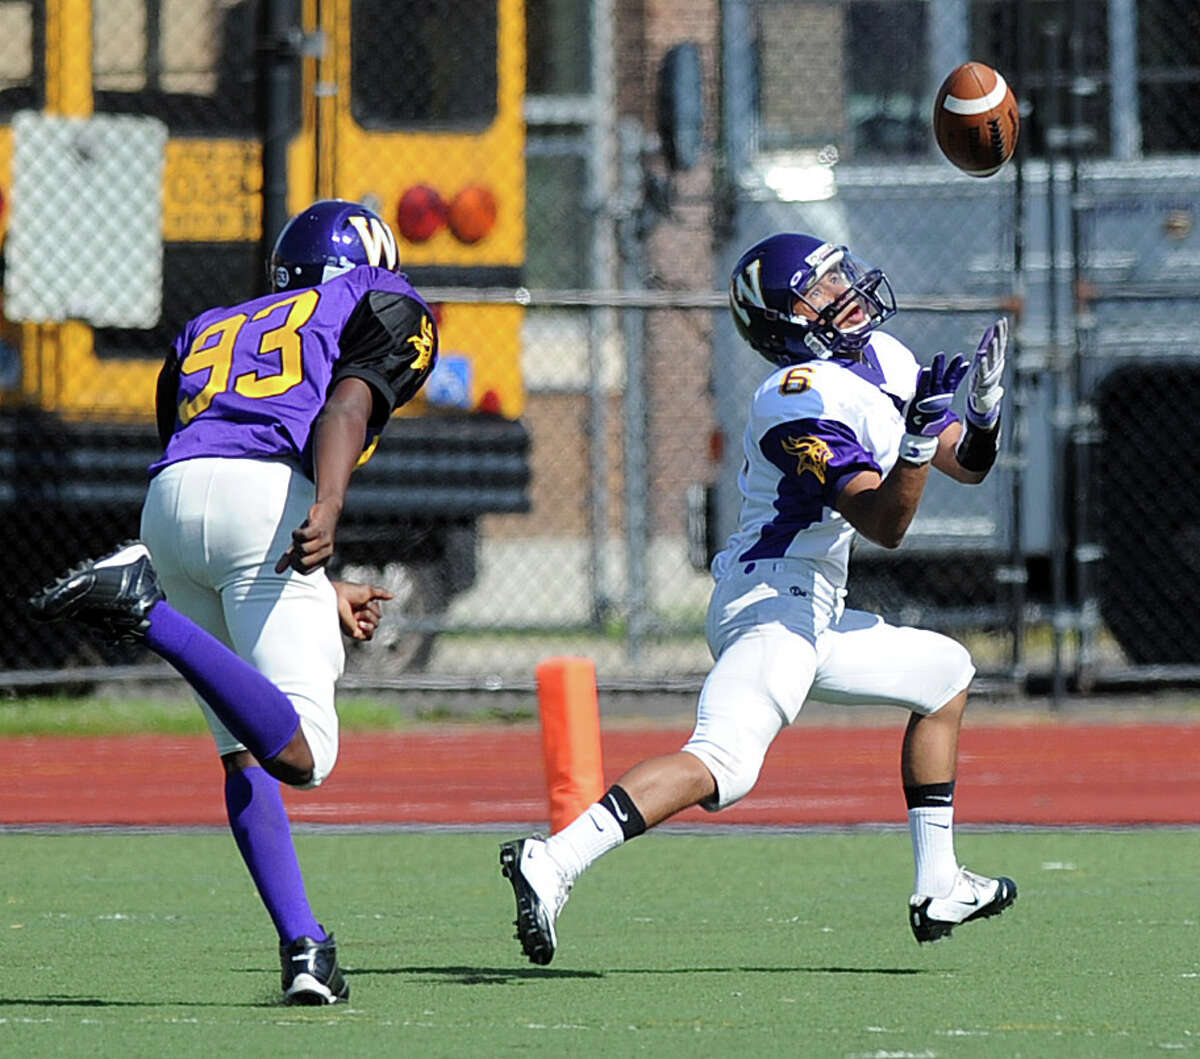 Sean Remondino makes a catch for a touchdown during Saturday's spring football game at Westhill High School on June 16, 2012.